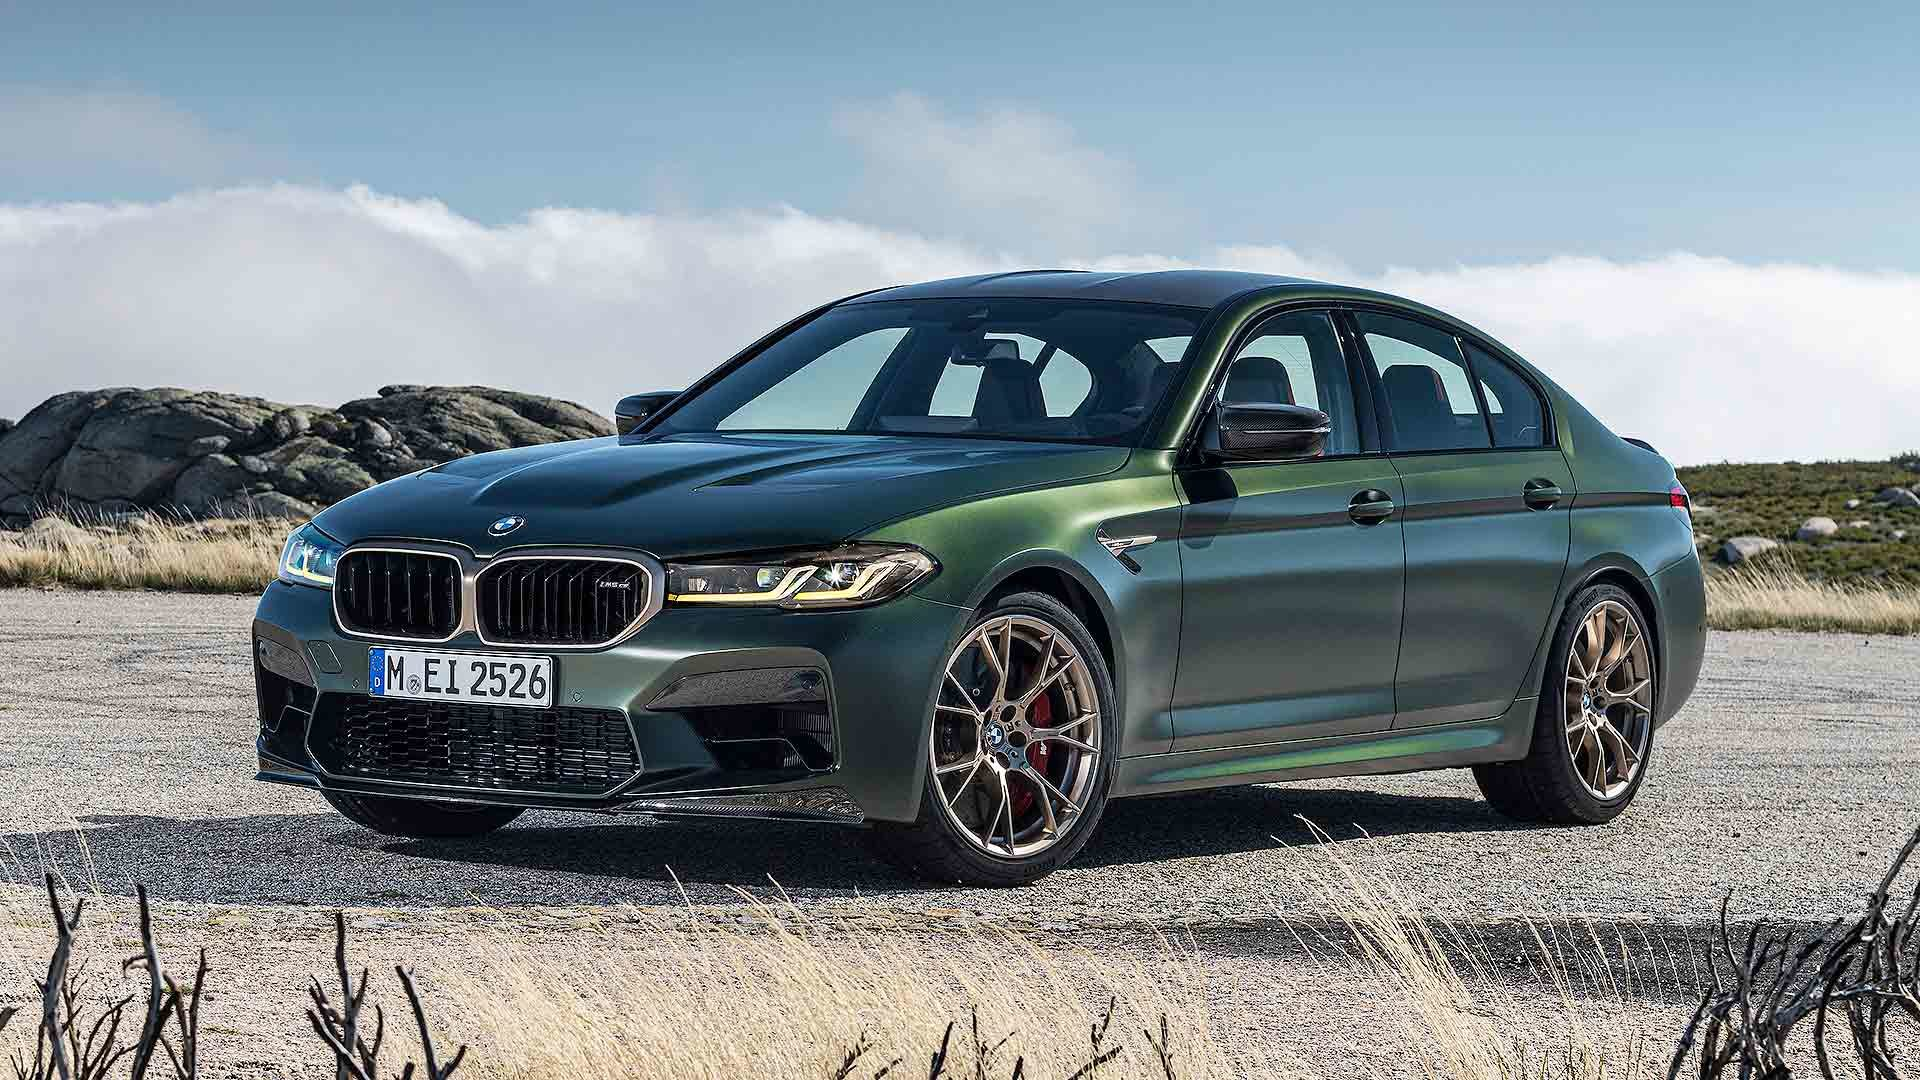 BMW M5 CS, its most-powerful sedan ever, breaks cover